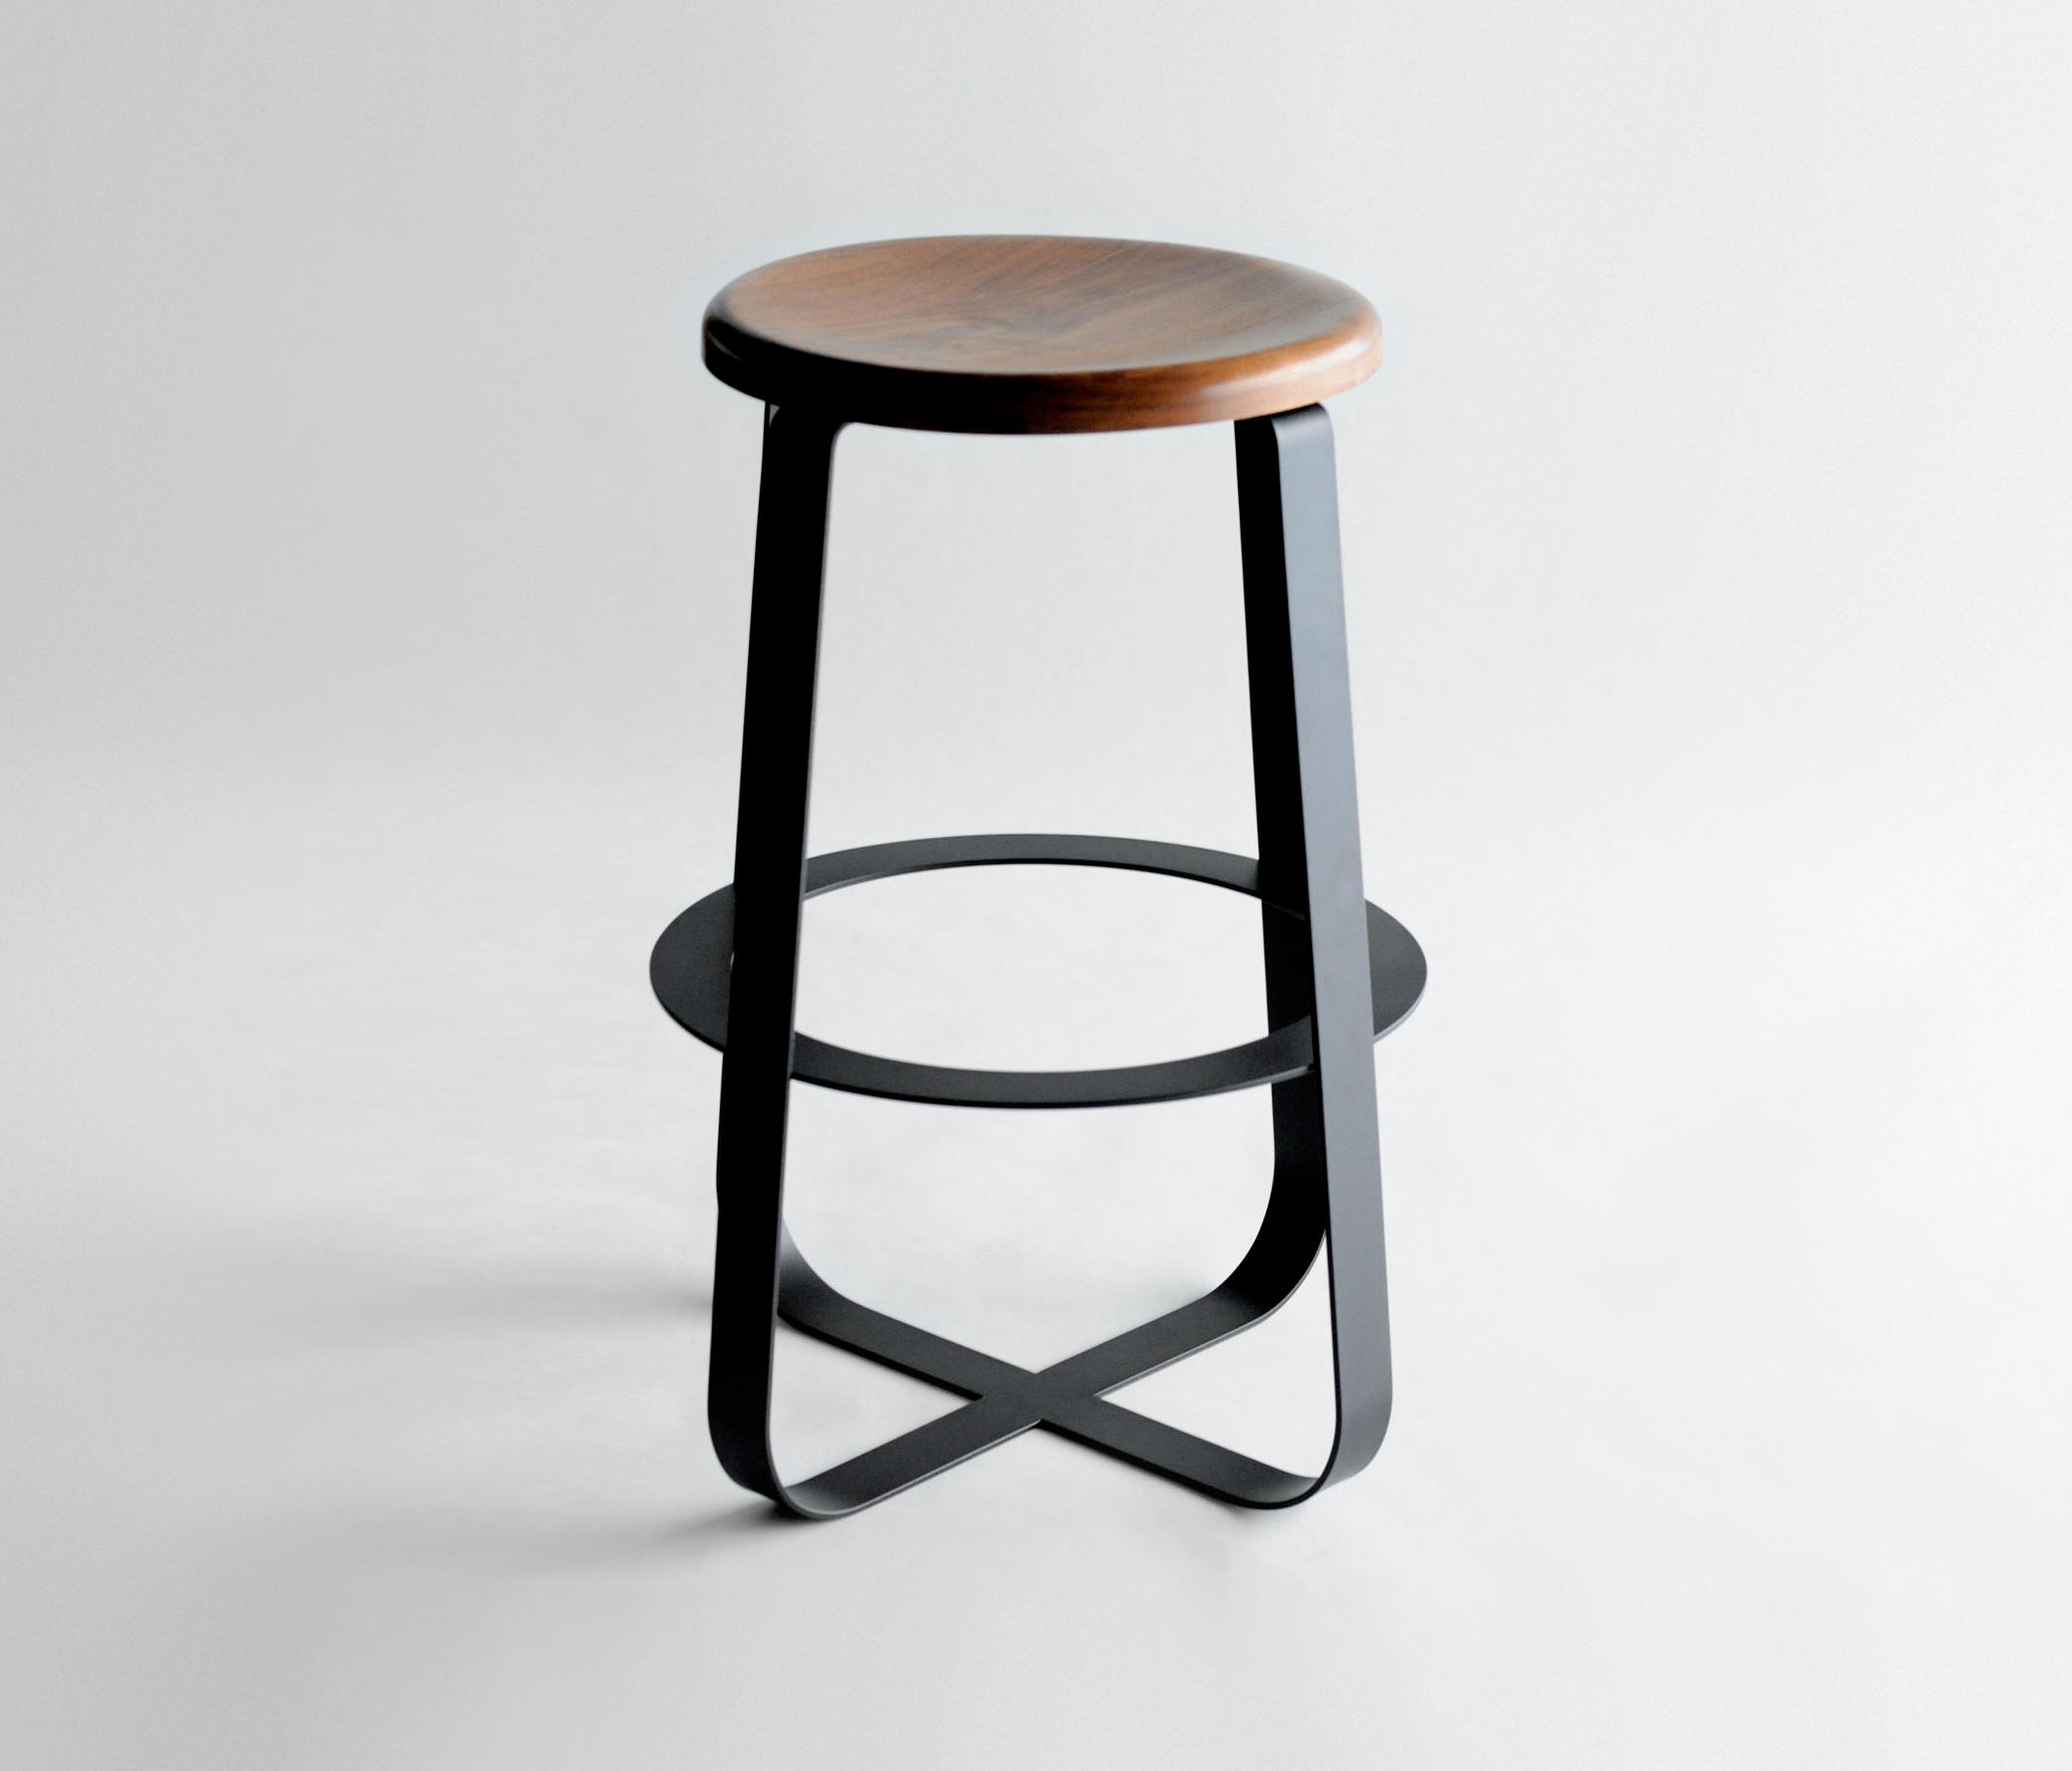 design bar chairs chair turkey primi counter stool stools from phase